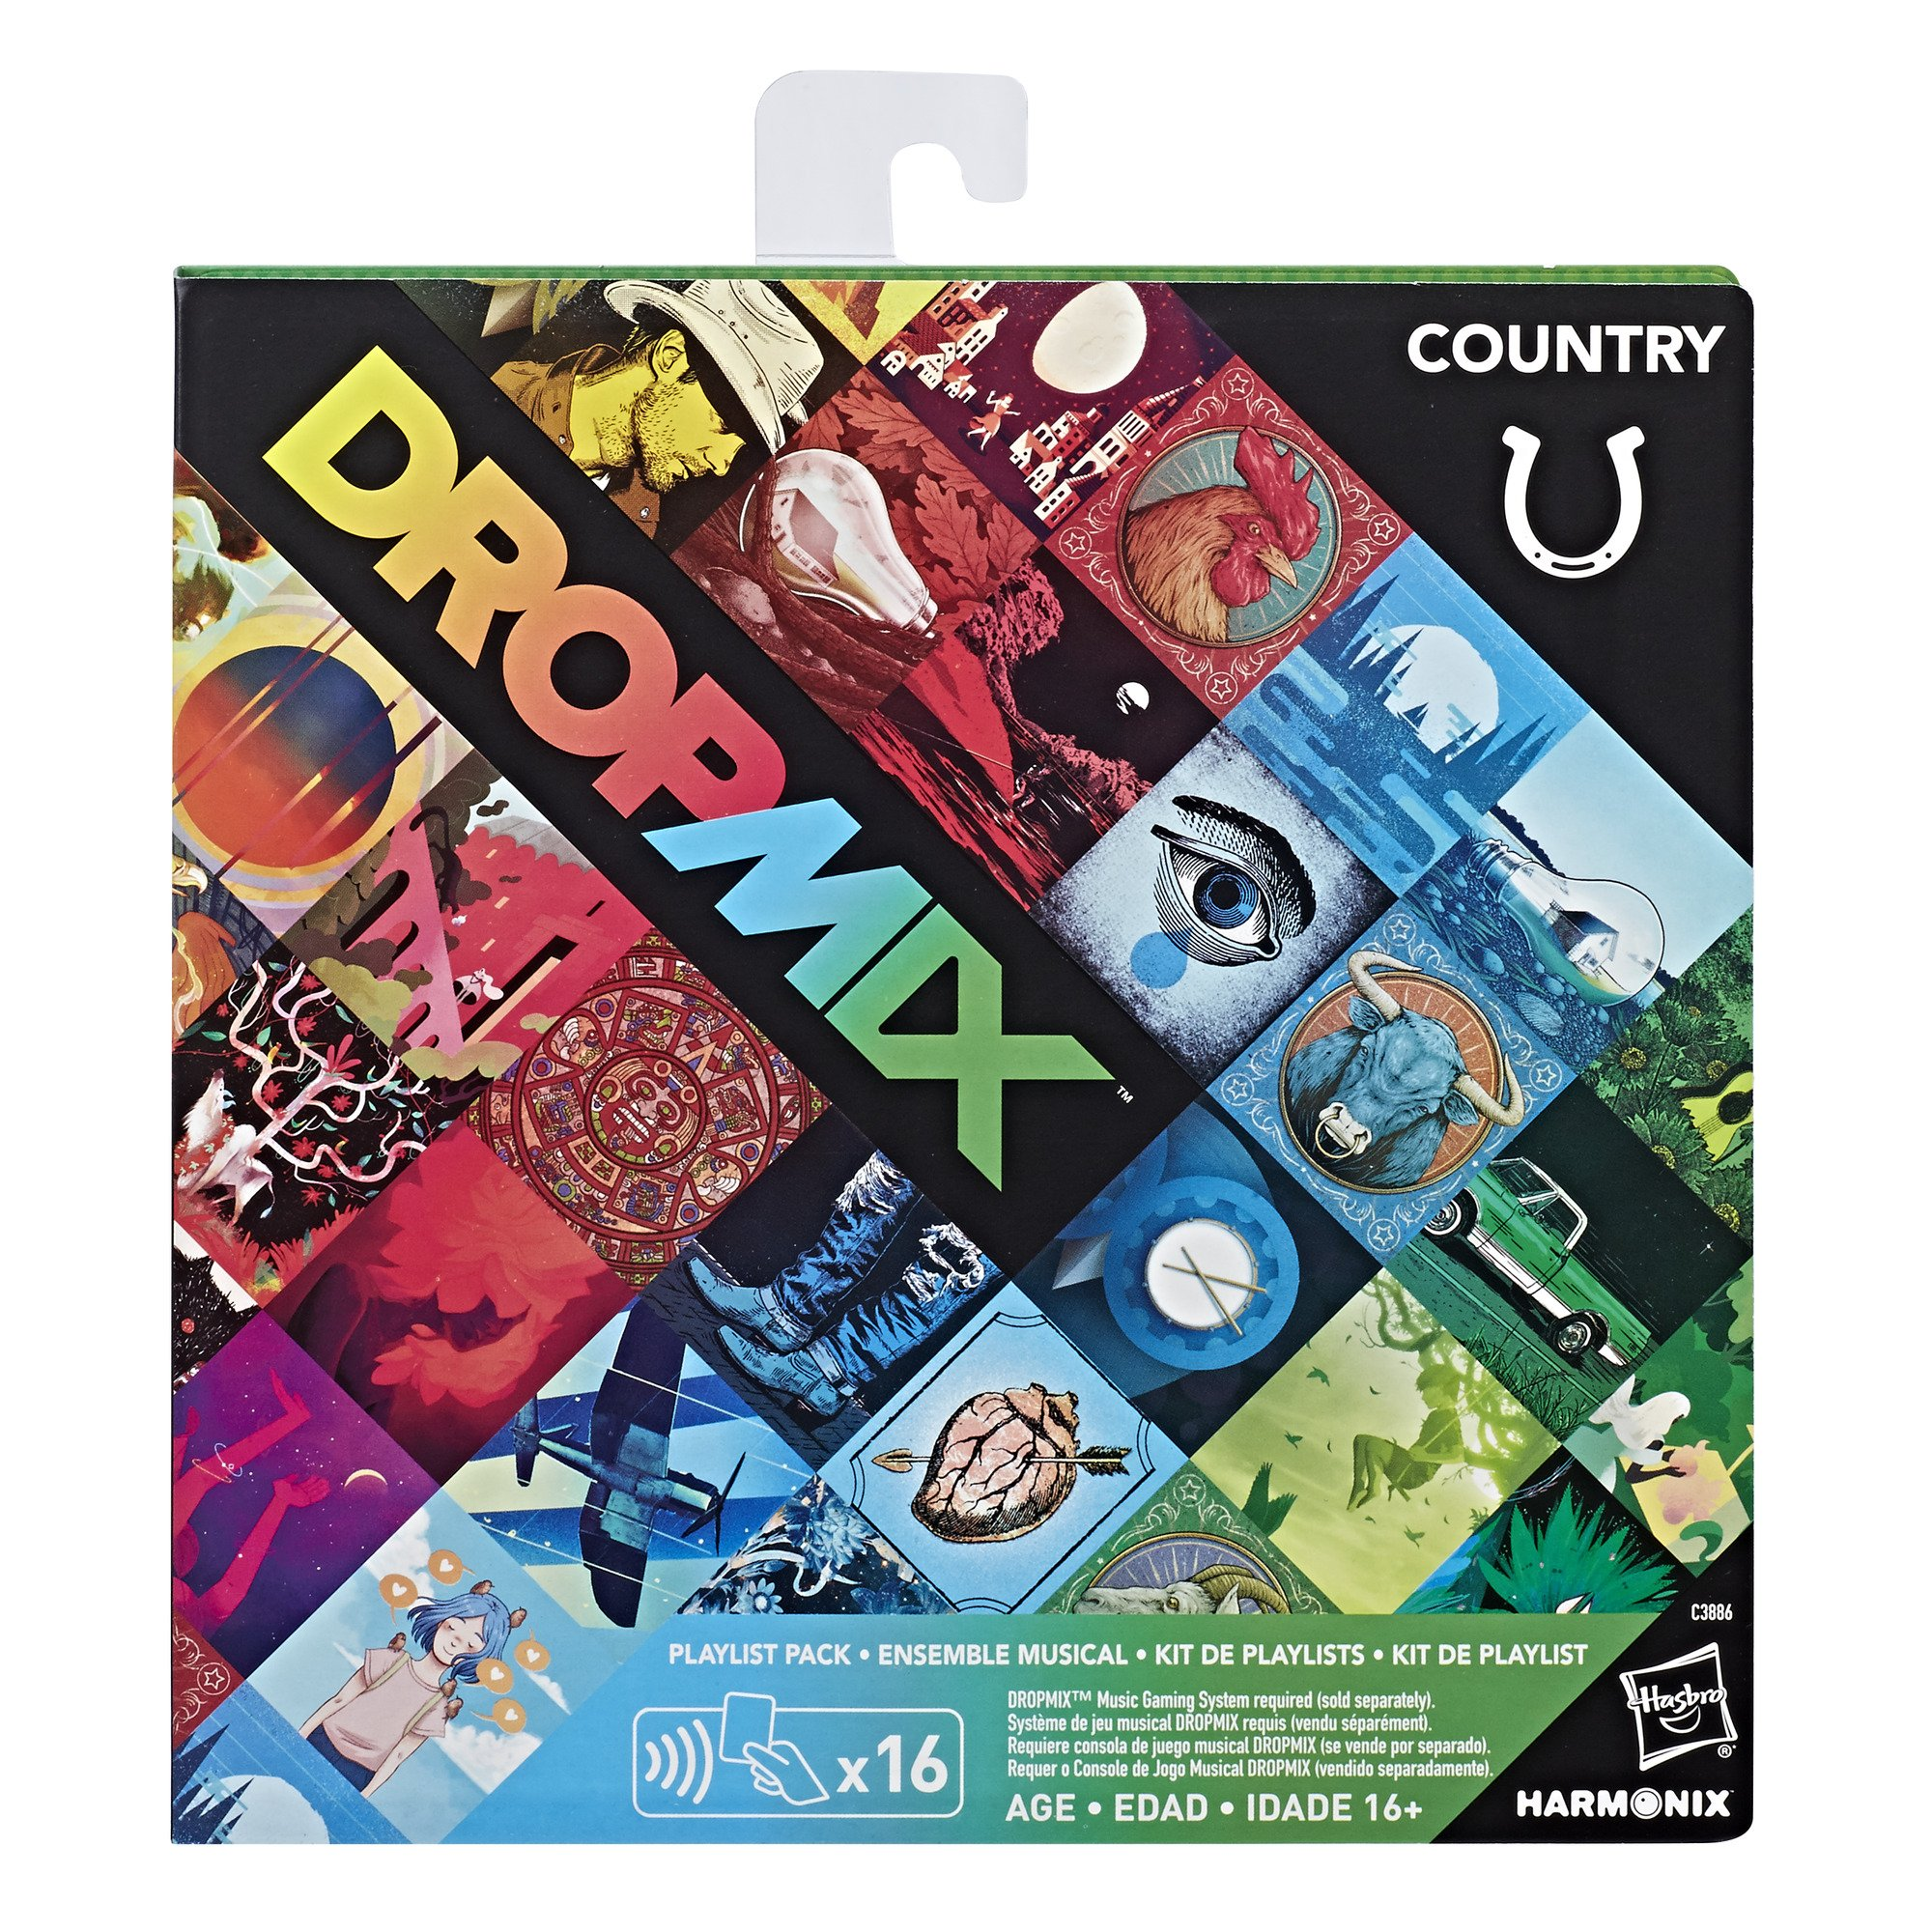 Hasbro DropMix Playlist Pack Country (Lucky) by Hasbro